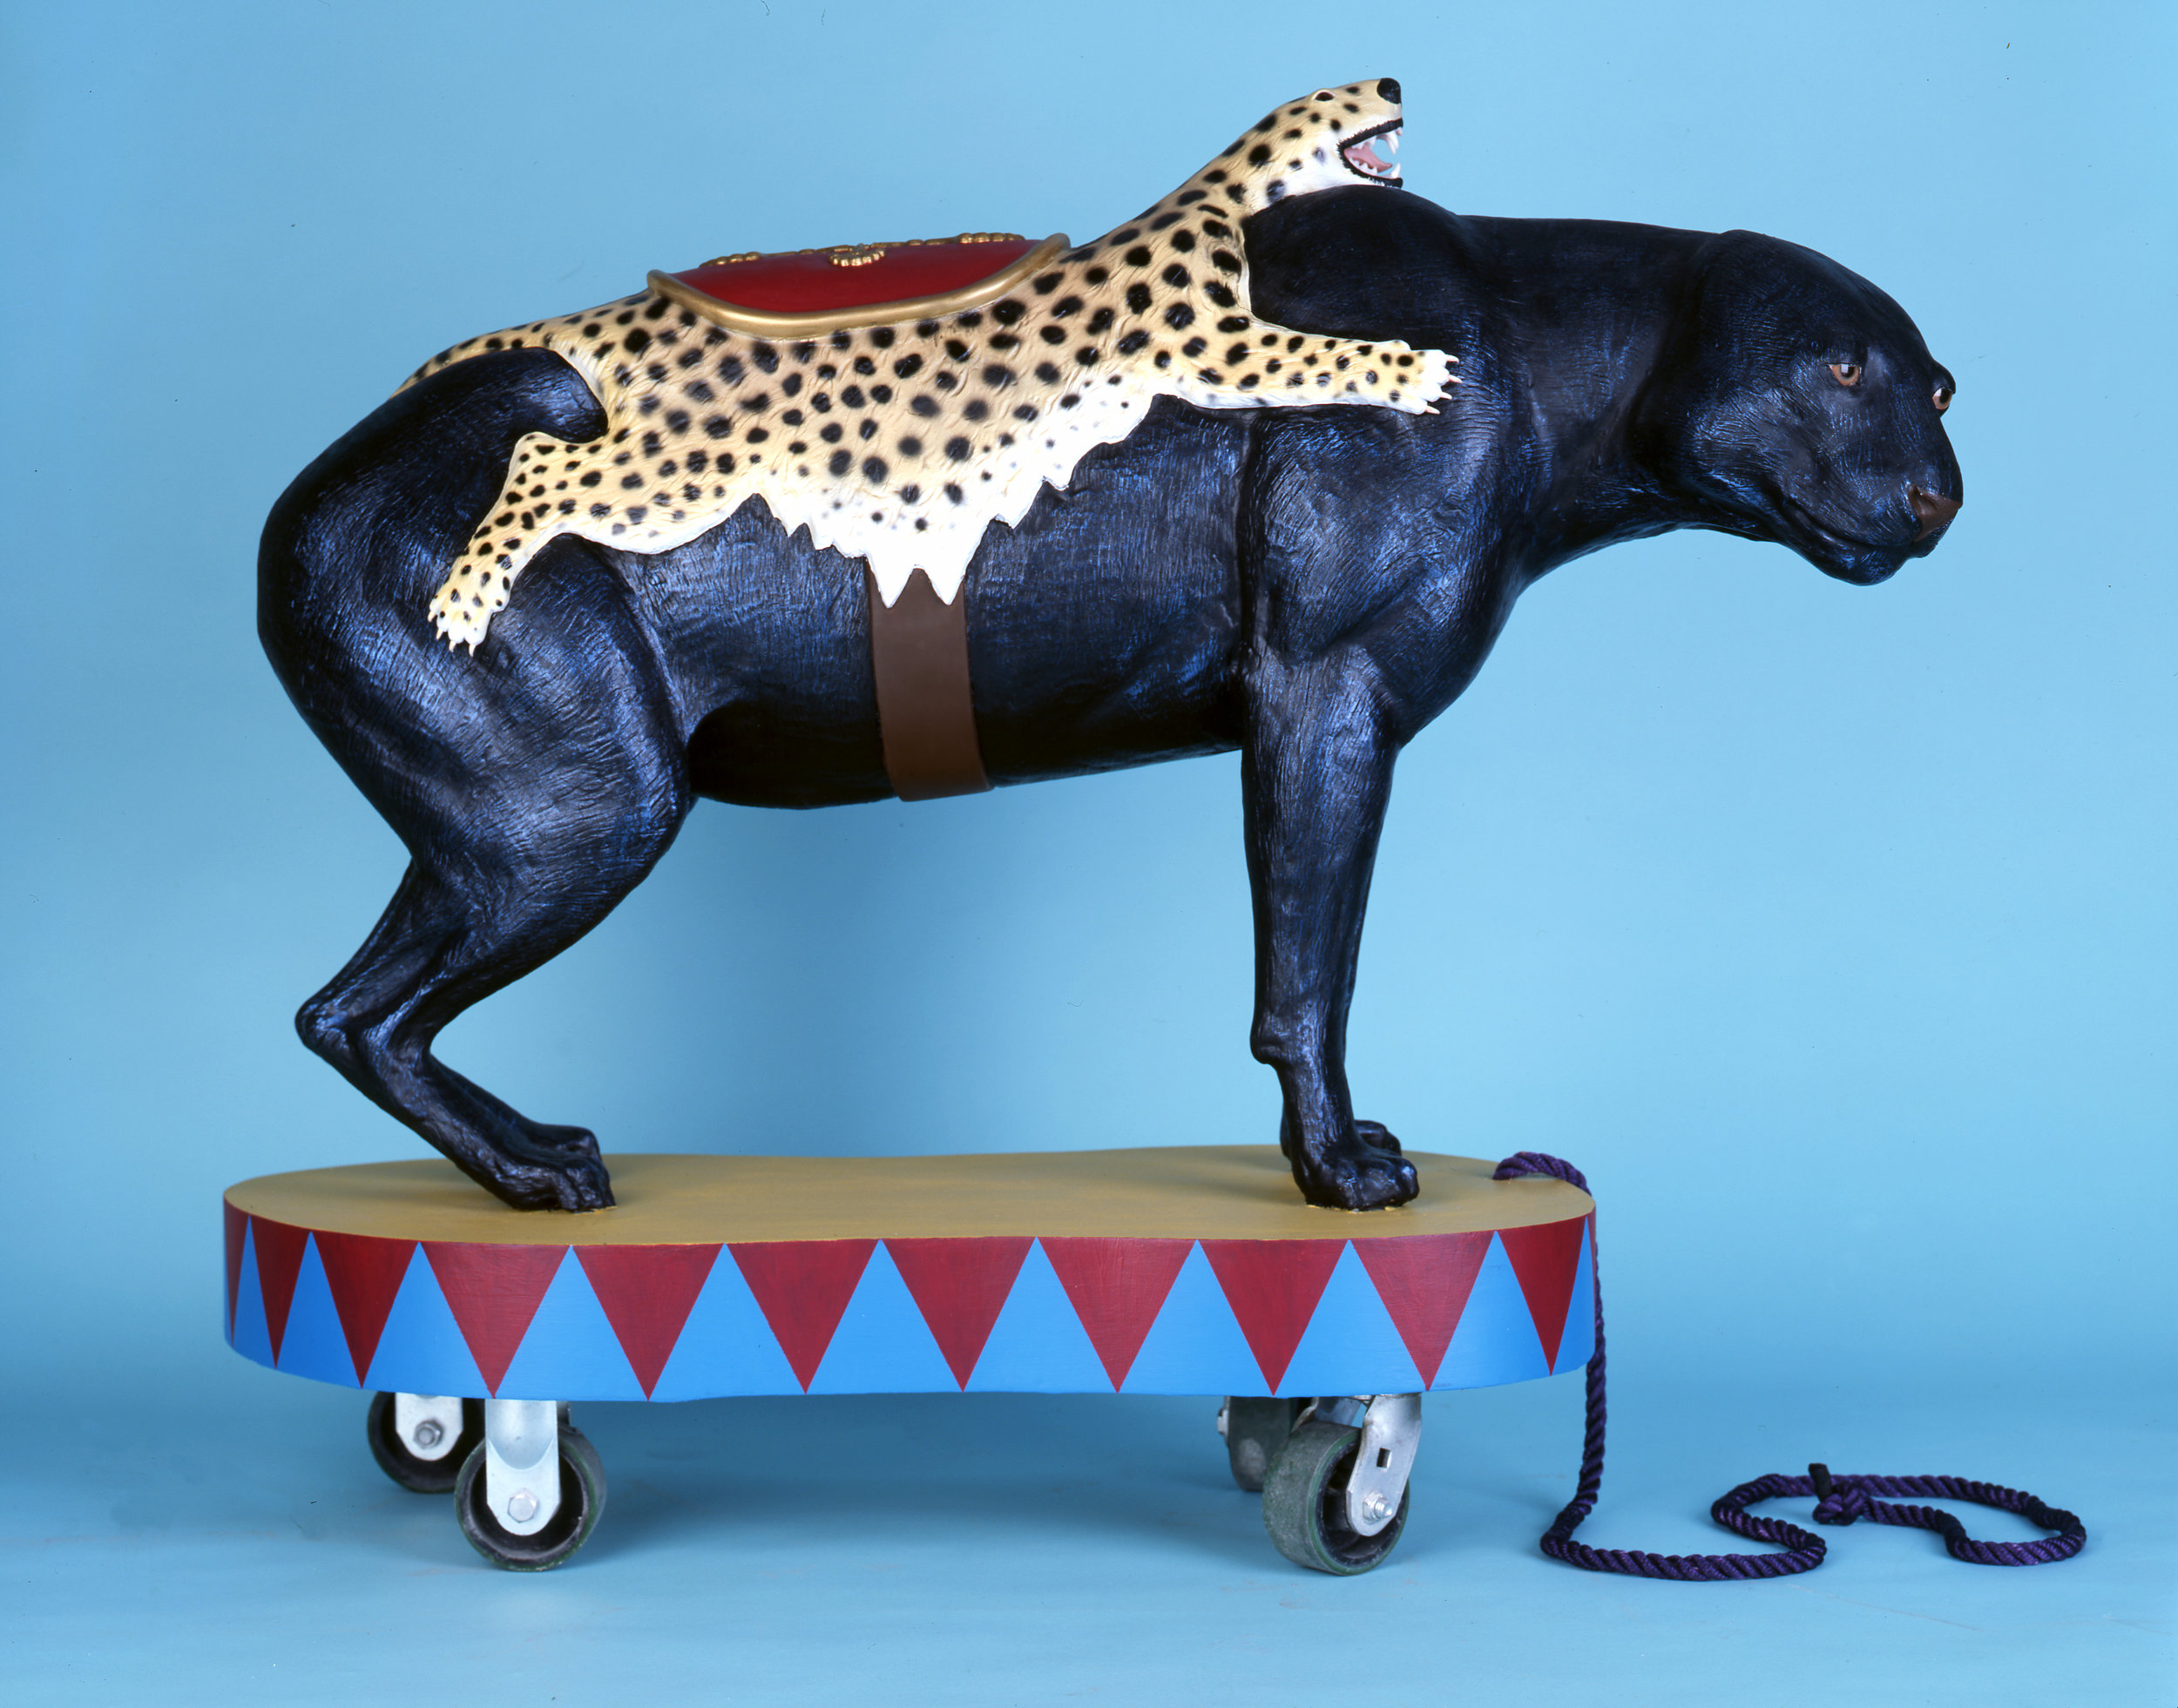 Panther, 2008 wood, foam, aqua resin, surfacing veil, plastic, acrylic paint, castor wheels and rope 106,5 x 122 x 51 cm - 41 15/16 x 48 x 20 1/16 inches